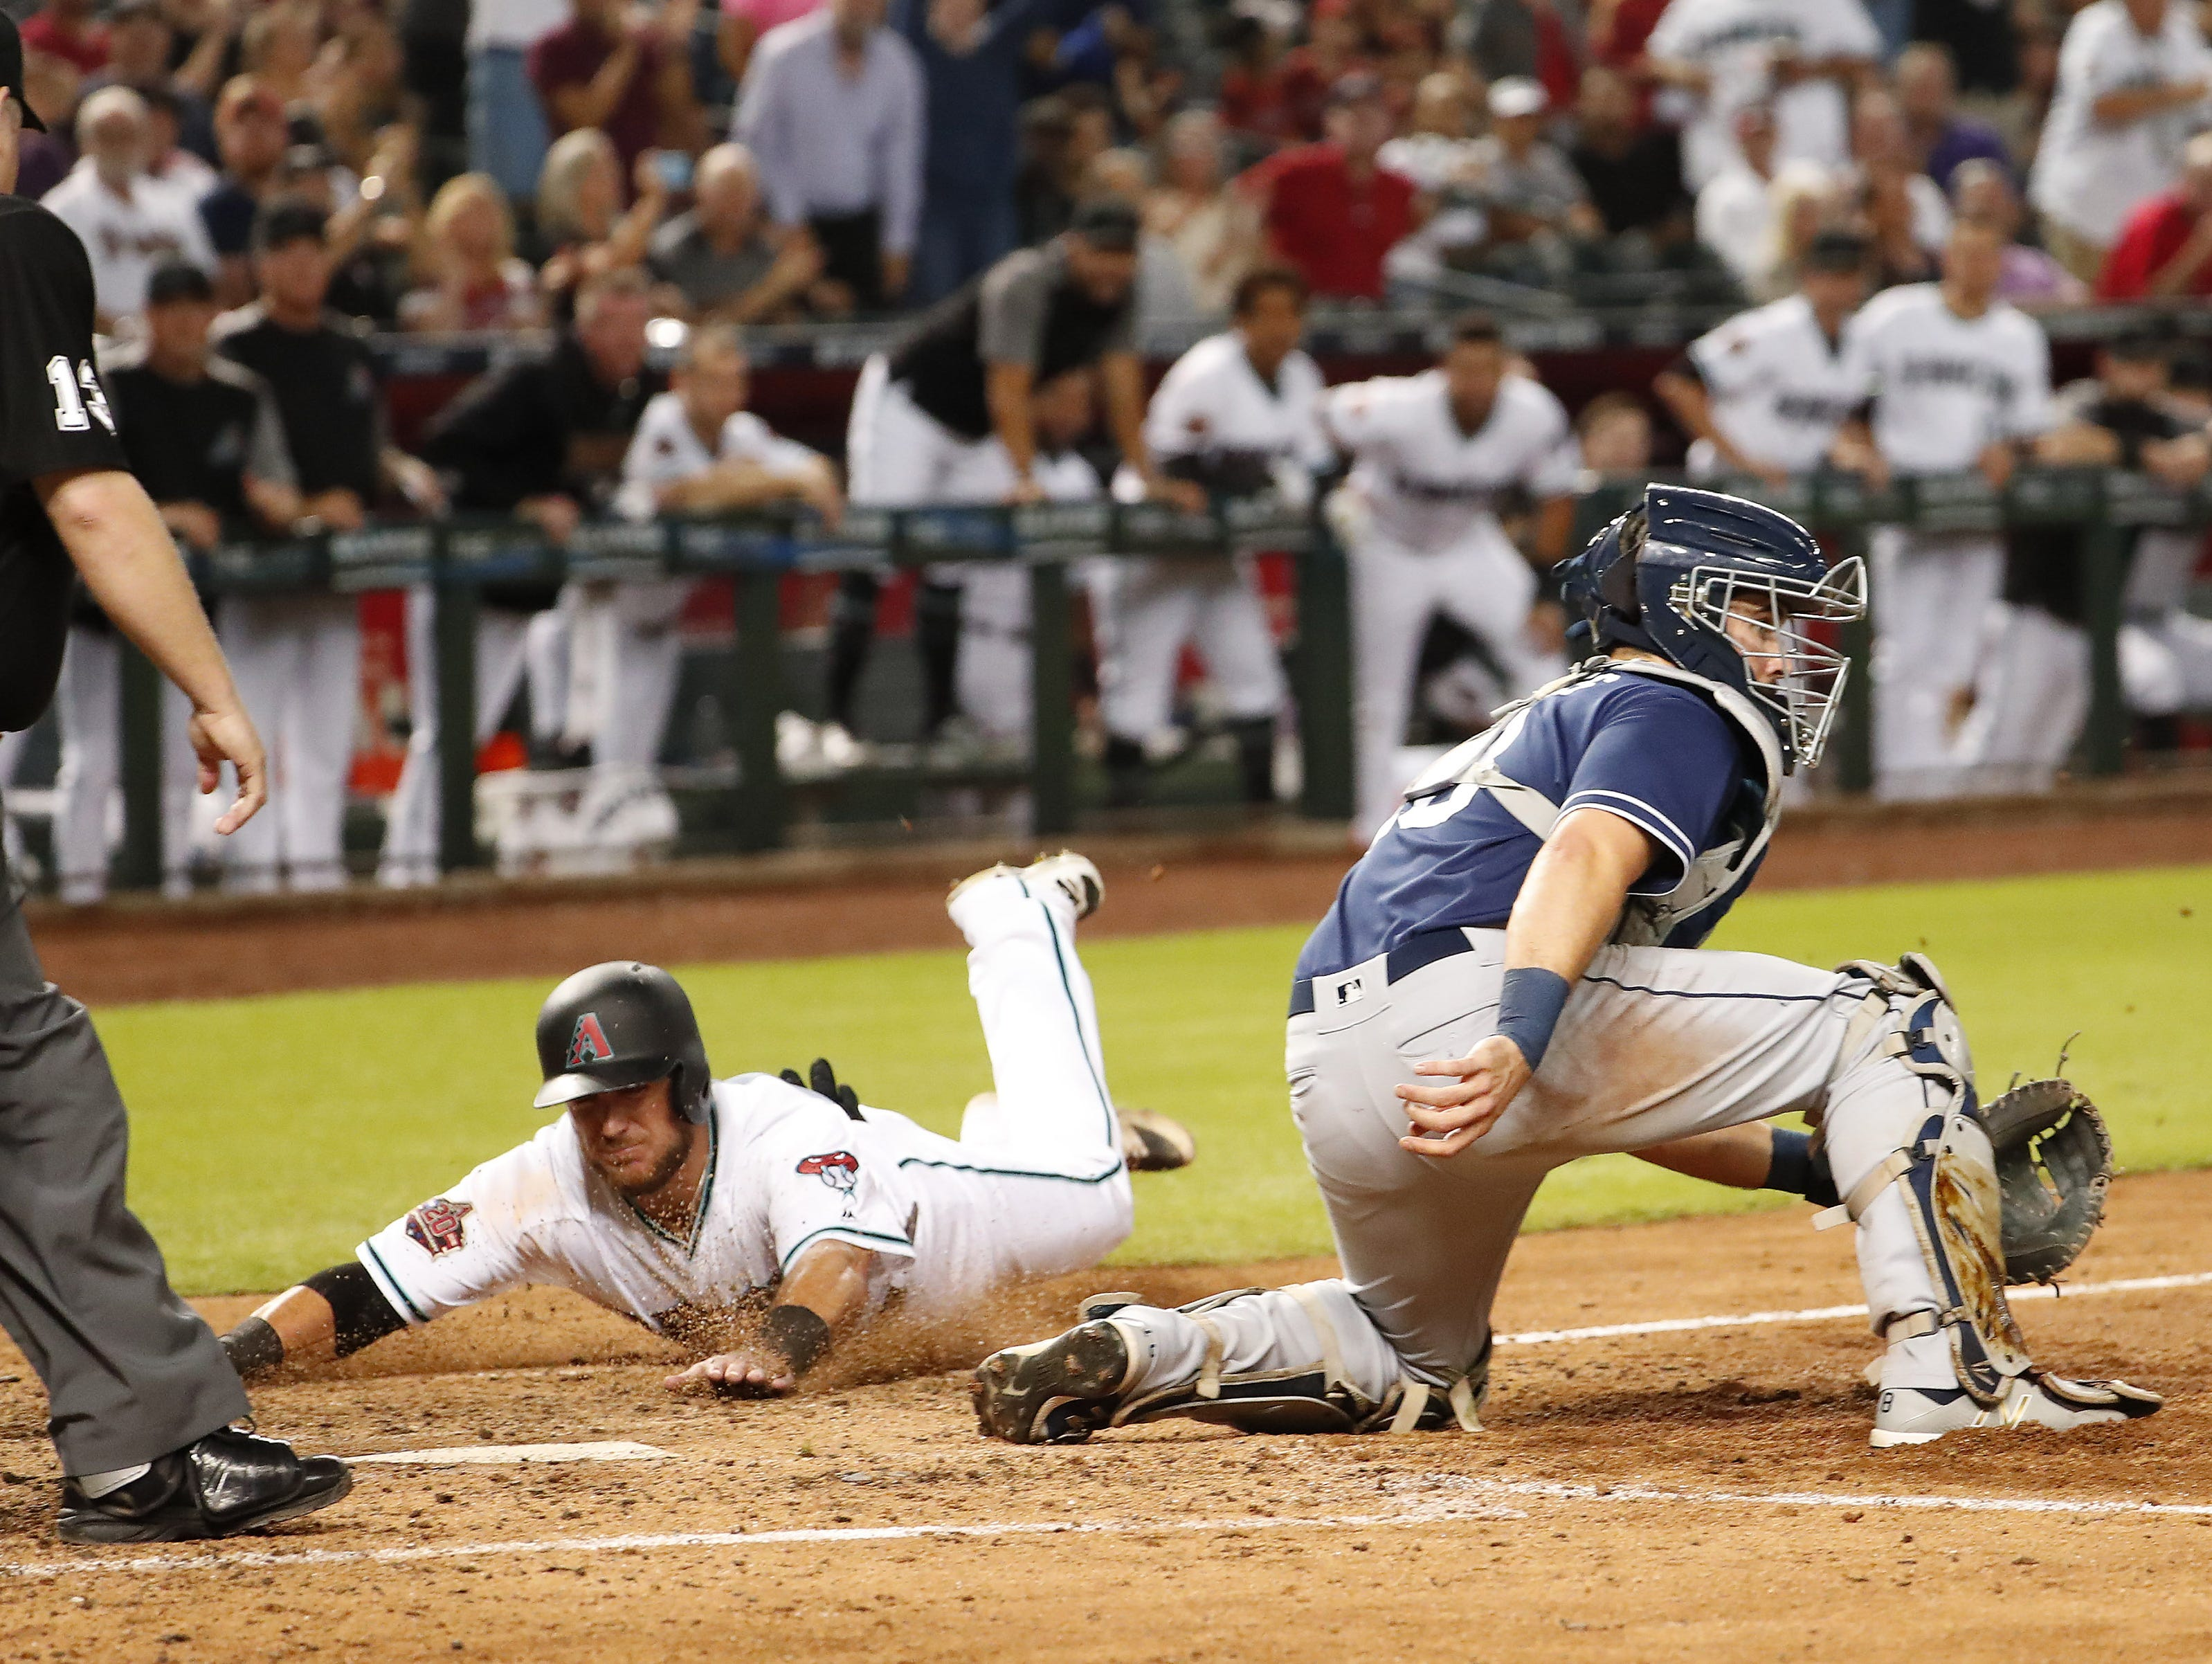 Arizona Diamondbacks catcher Jeff Mathis (2) scores ahead of the tag by San Diego Padres catcher Austin Hedges (18) during the seventh inning at Chase Field in Phoenix, Ariz. Sept. 4, 2018.